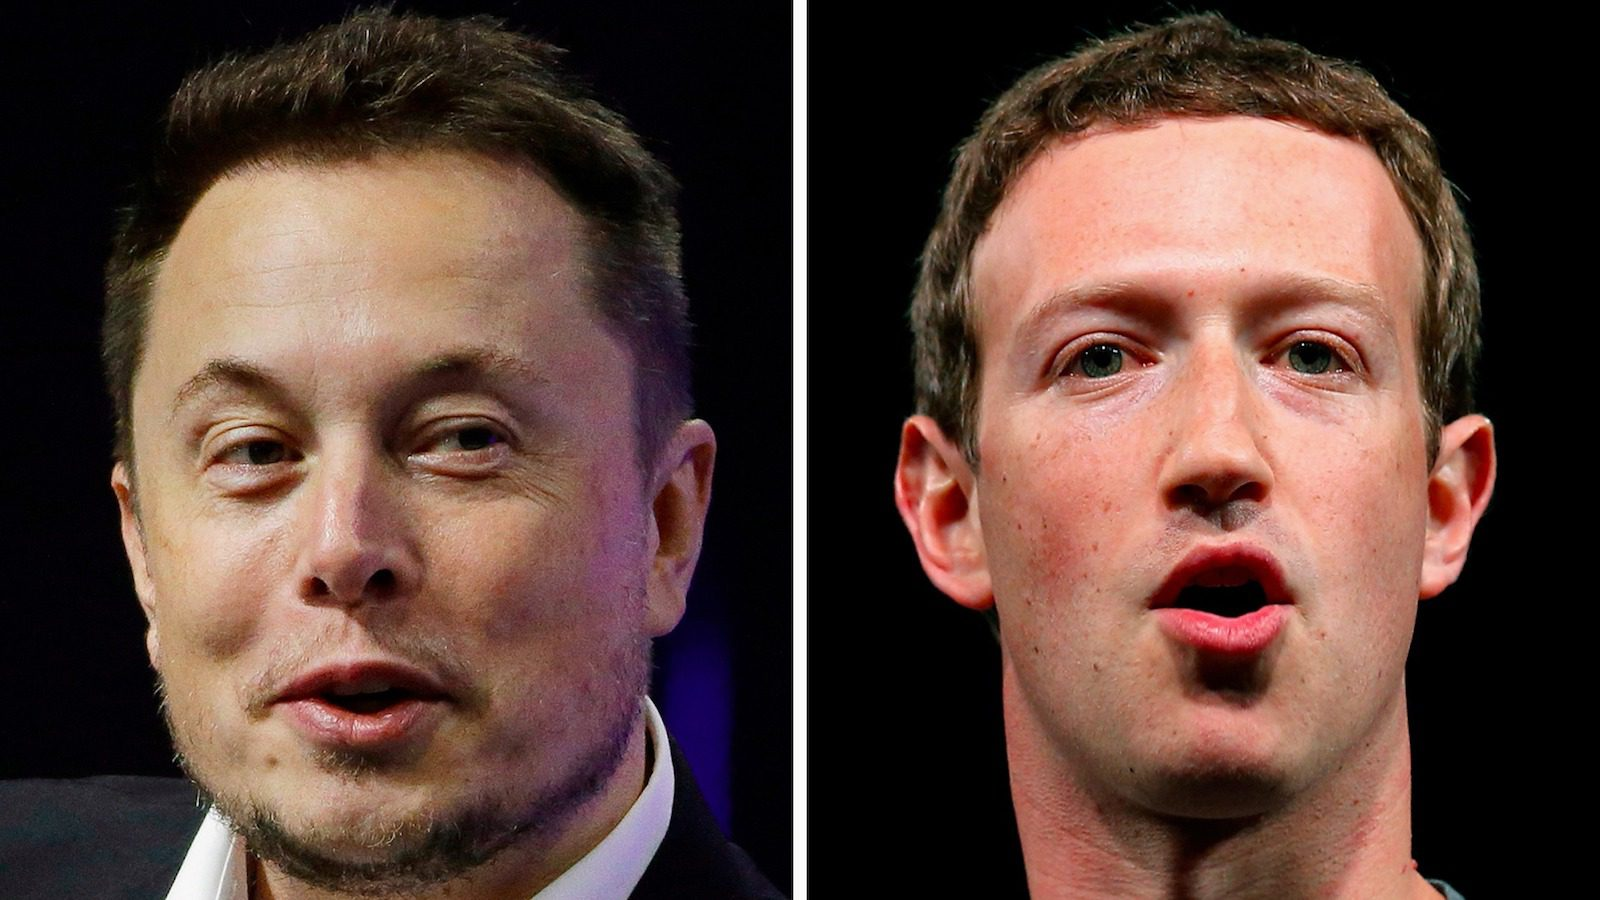 This combo of file images shows Facebook CEO Mark Zuckerberg, left, and Tesla and SpaceX CEO Elon Musk. An online smackdown between tech titans Zuckerberg and Musk over the possible threat of artificial intelligence underlines how little most people know about the rapidly advancing technology. (AP Photo/Manu Fernandez, Stephan Savoia)